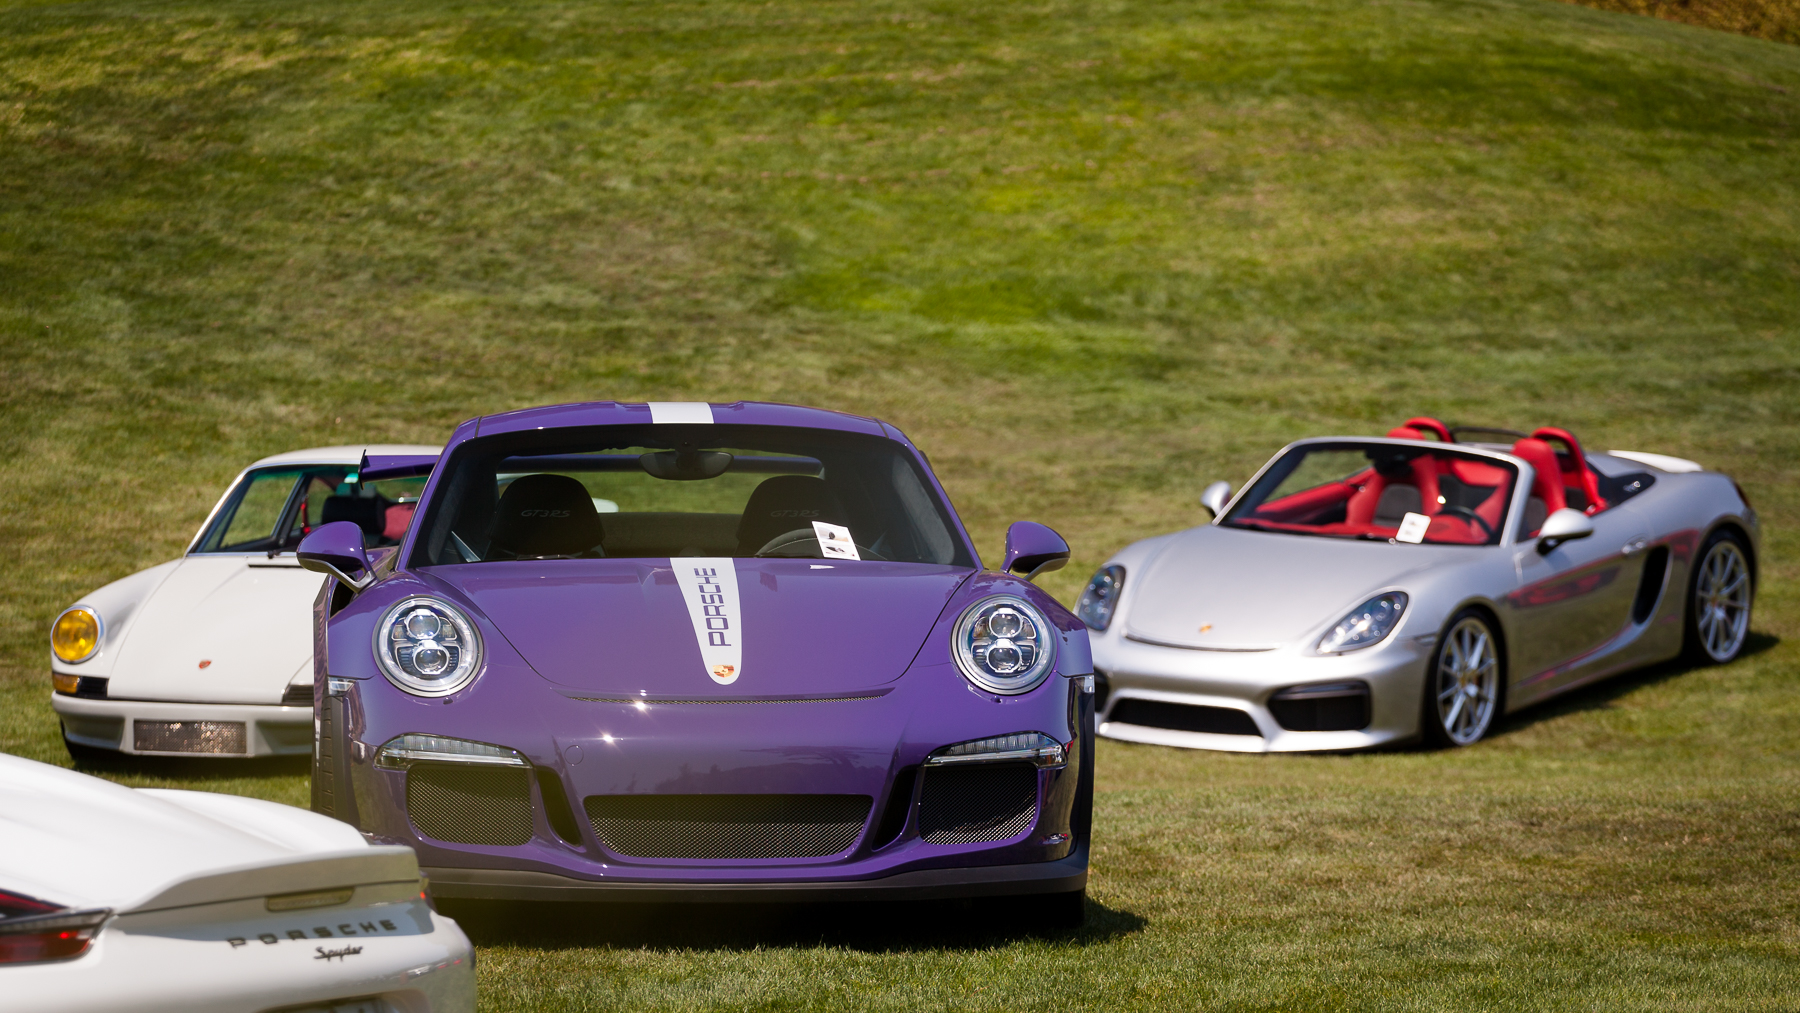 Porsche 991 GT3Rs front and center